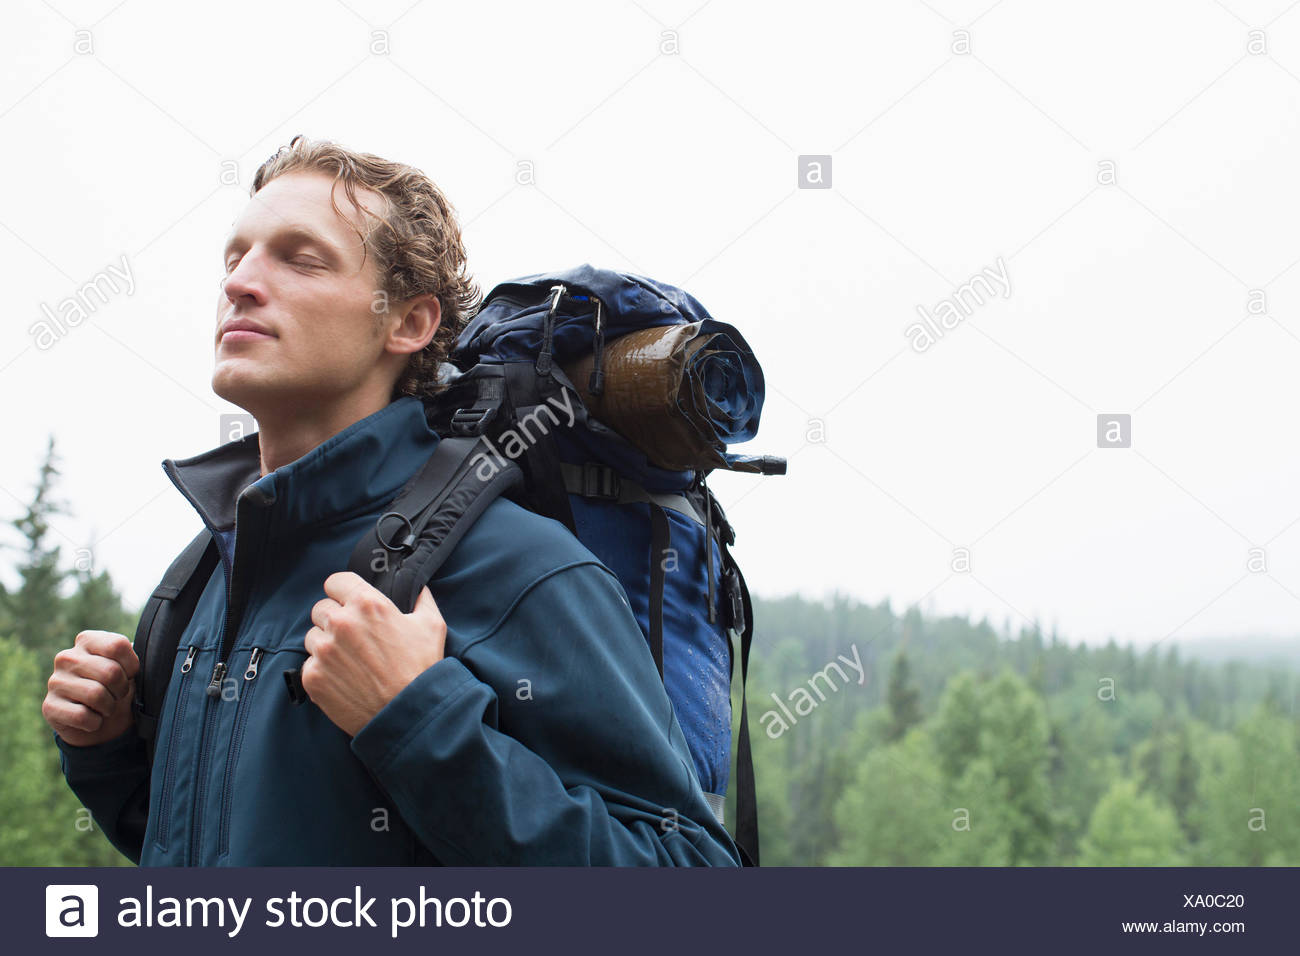 male backpacker breathing in fresh air with eyes closed - Stock Image